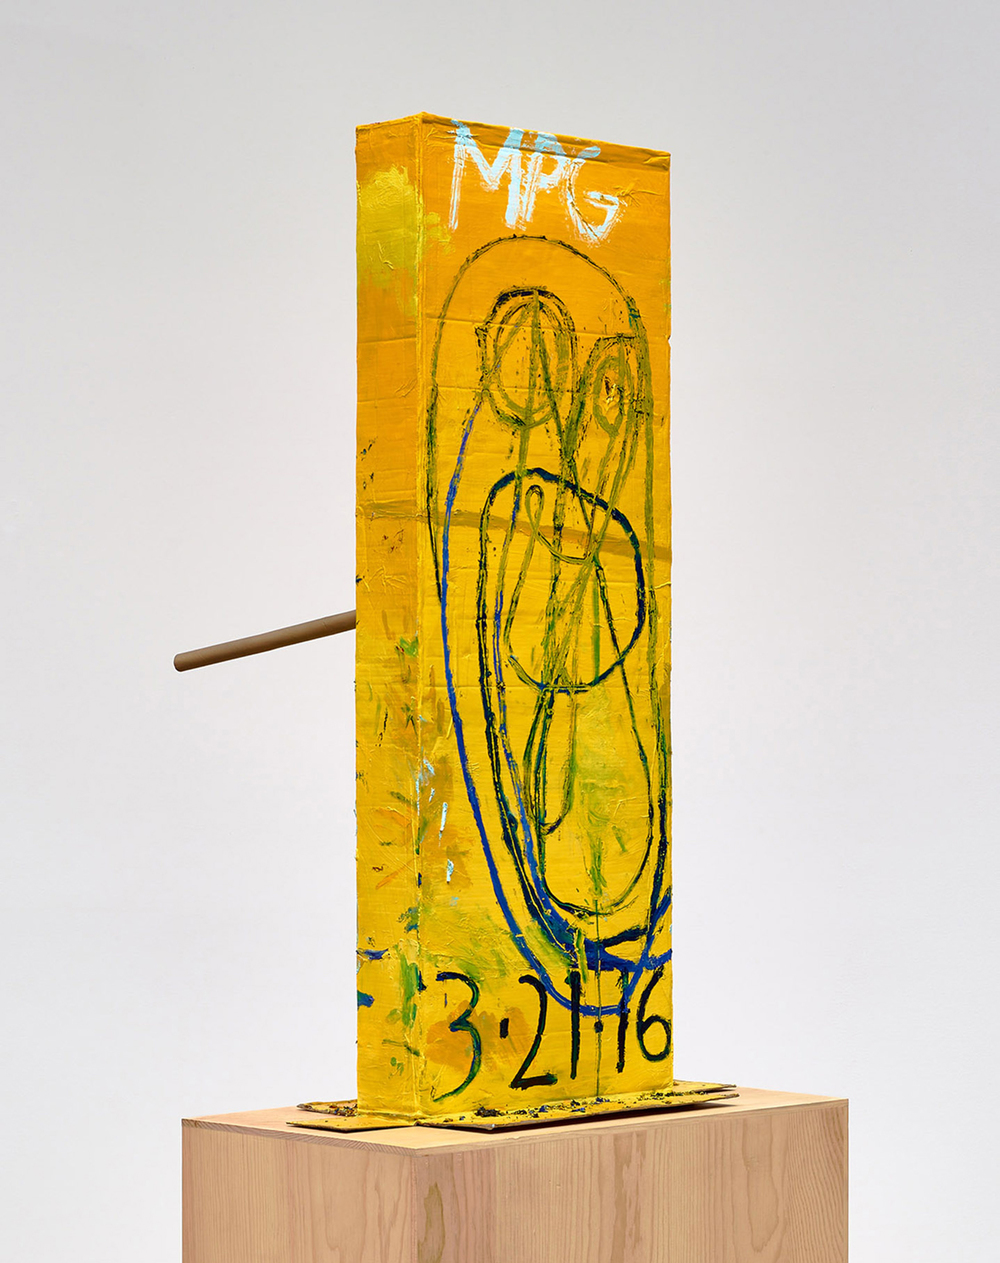 MARK GROTJAHN Untitled (Yellow Cosco II Mask M40.l), 2016 Painted bronze 59 1/2 x 33 1/4 x 36 1/2 inches 151.1 x 84.5 x 92.7 cm